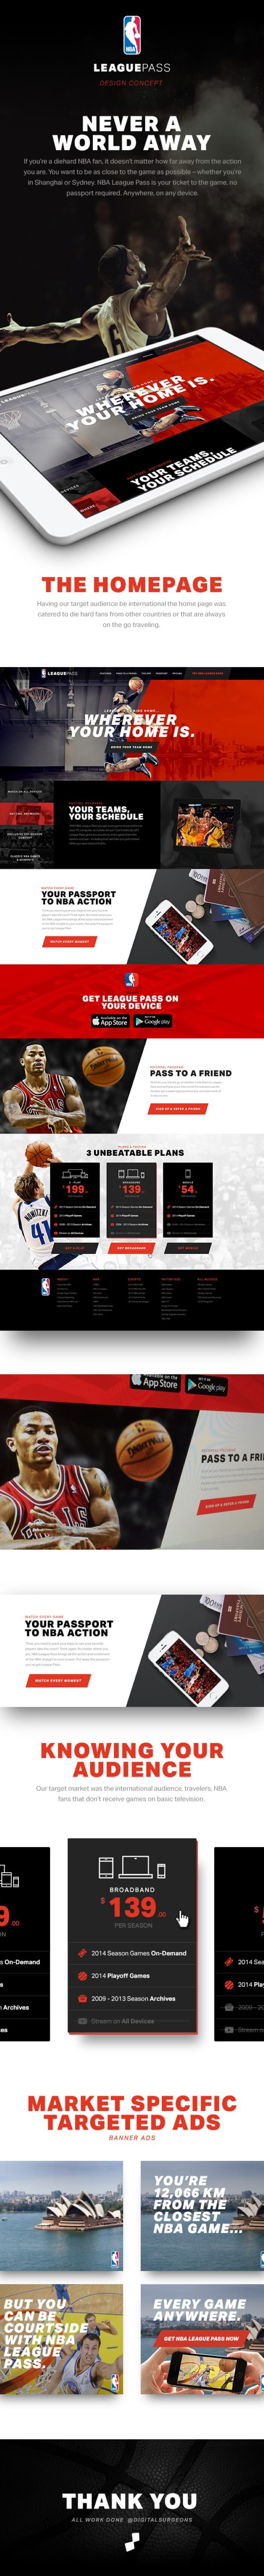 NBA League Pass por Matt Pringle & Rob Kurfehs de Estados Unidos